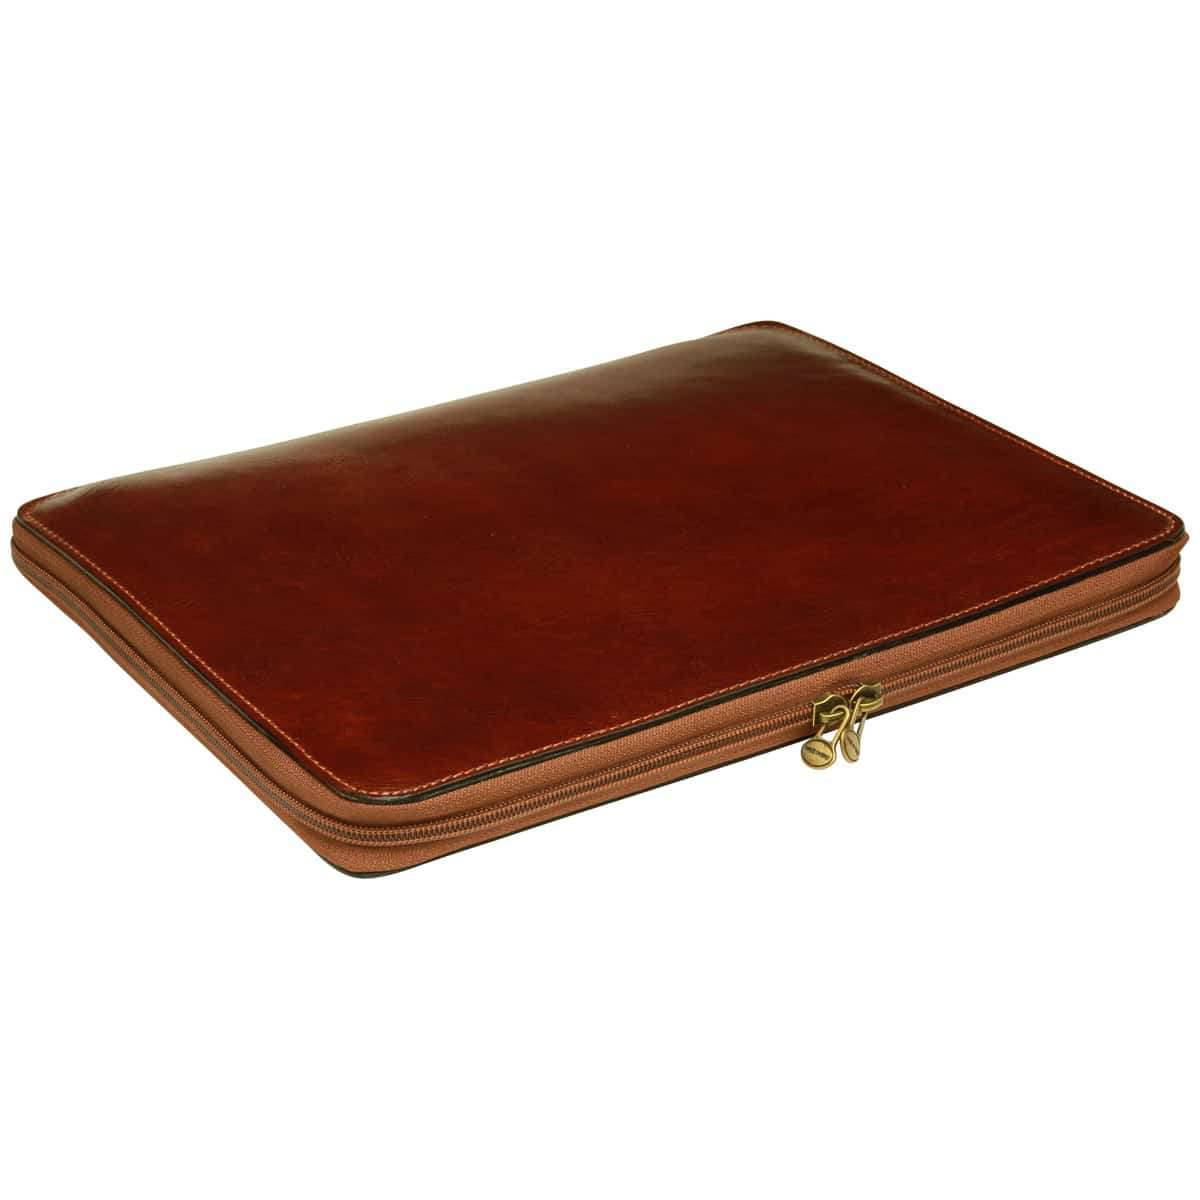 Cowhide leather portfolio - Brown